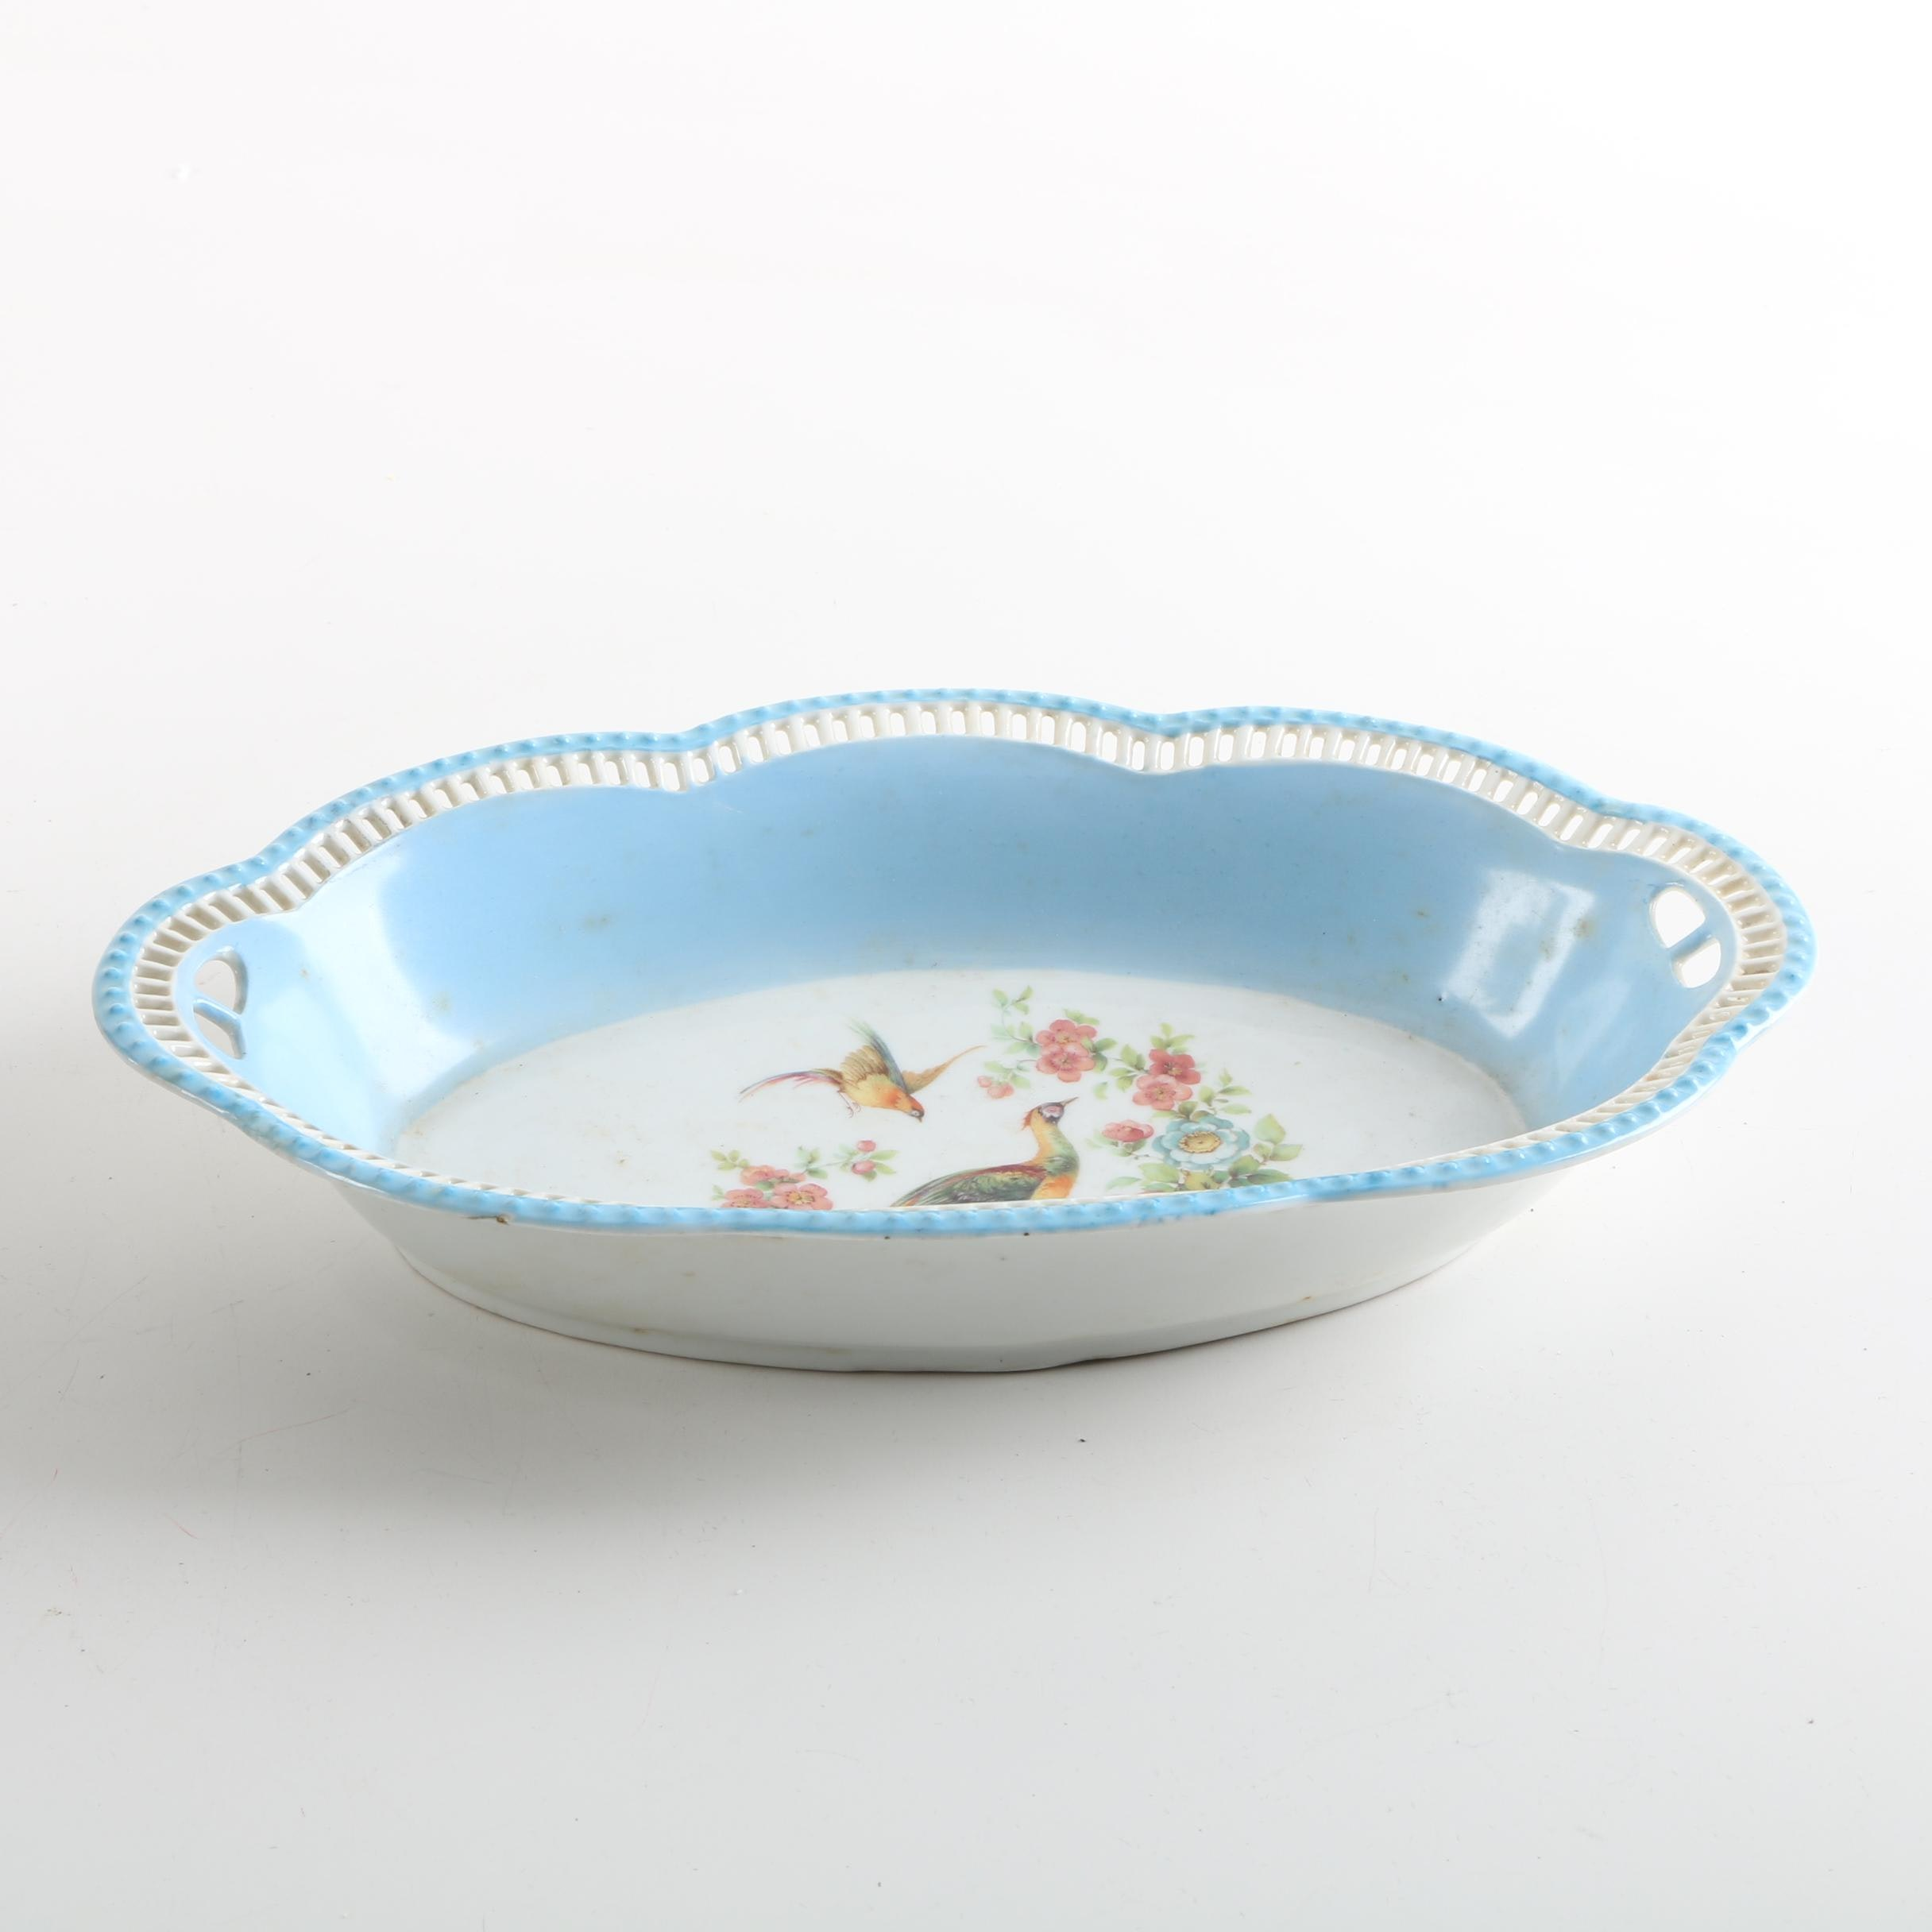 Schumann Bavaria Bowl with Peacocks and Flowers